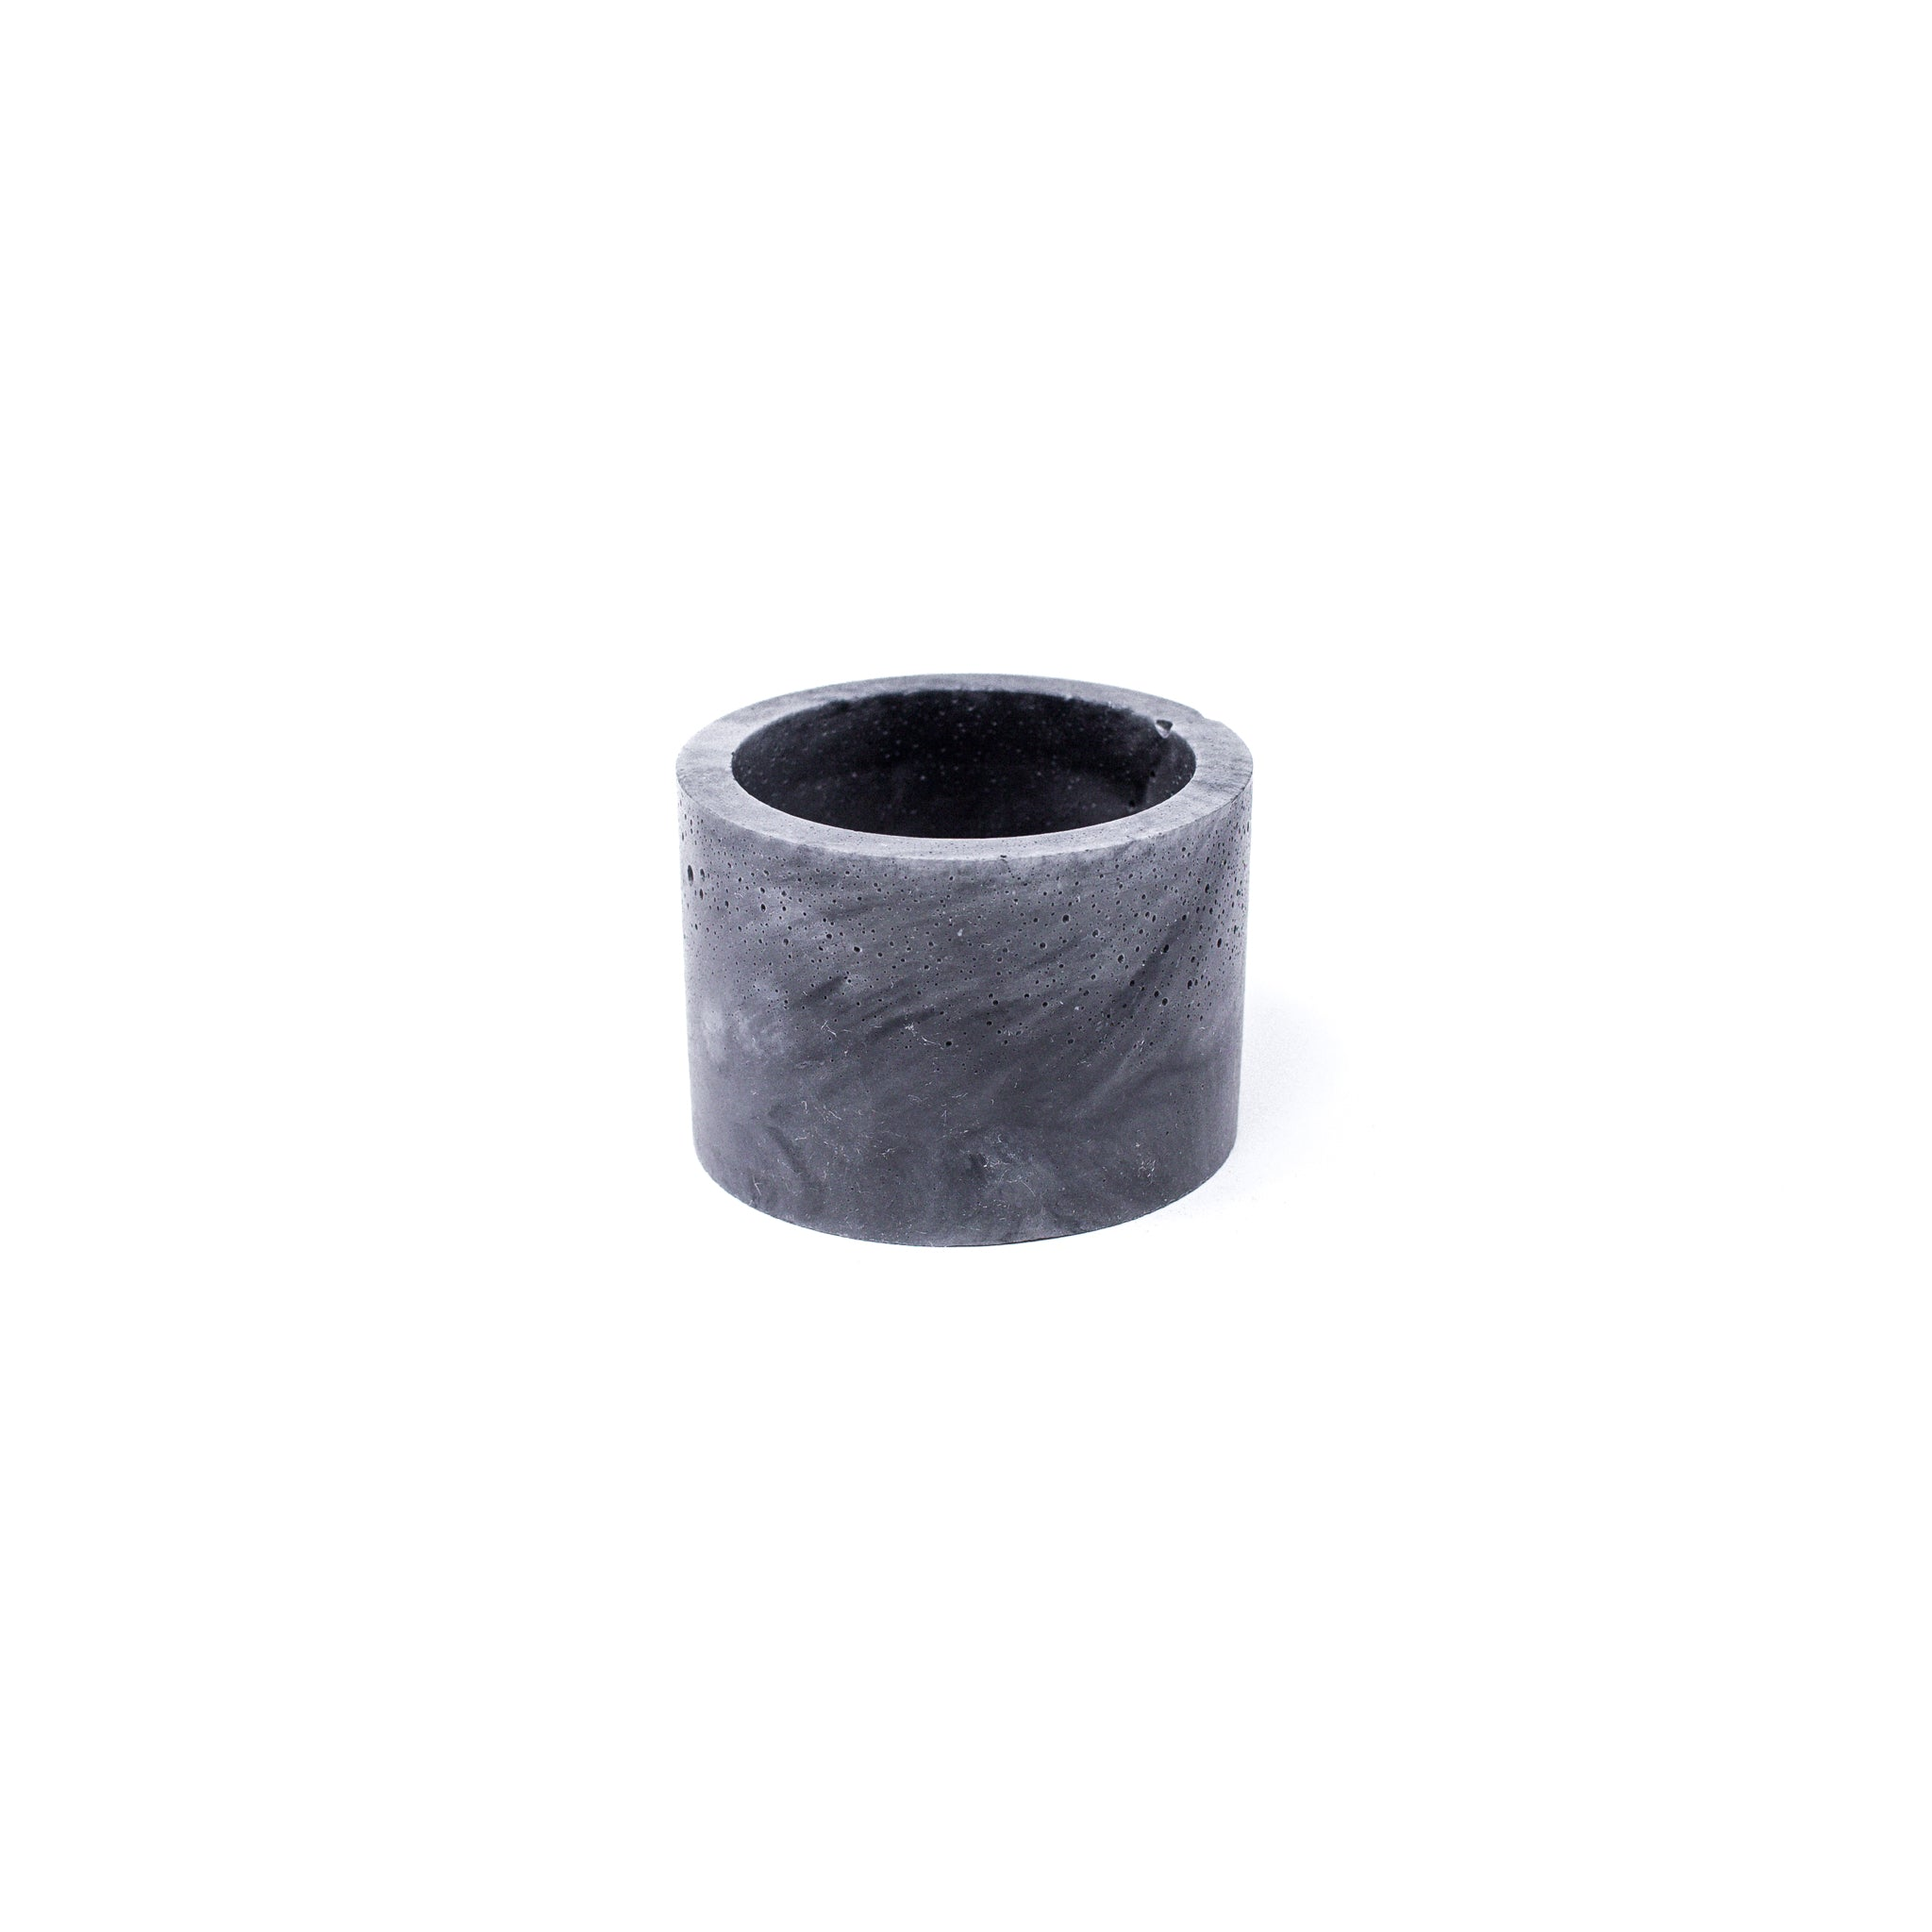 Concrete Planter: Short Cylinder (Dark Gray Marbled)